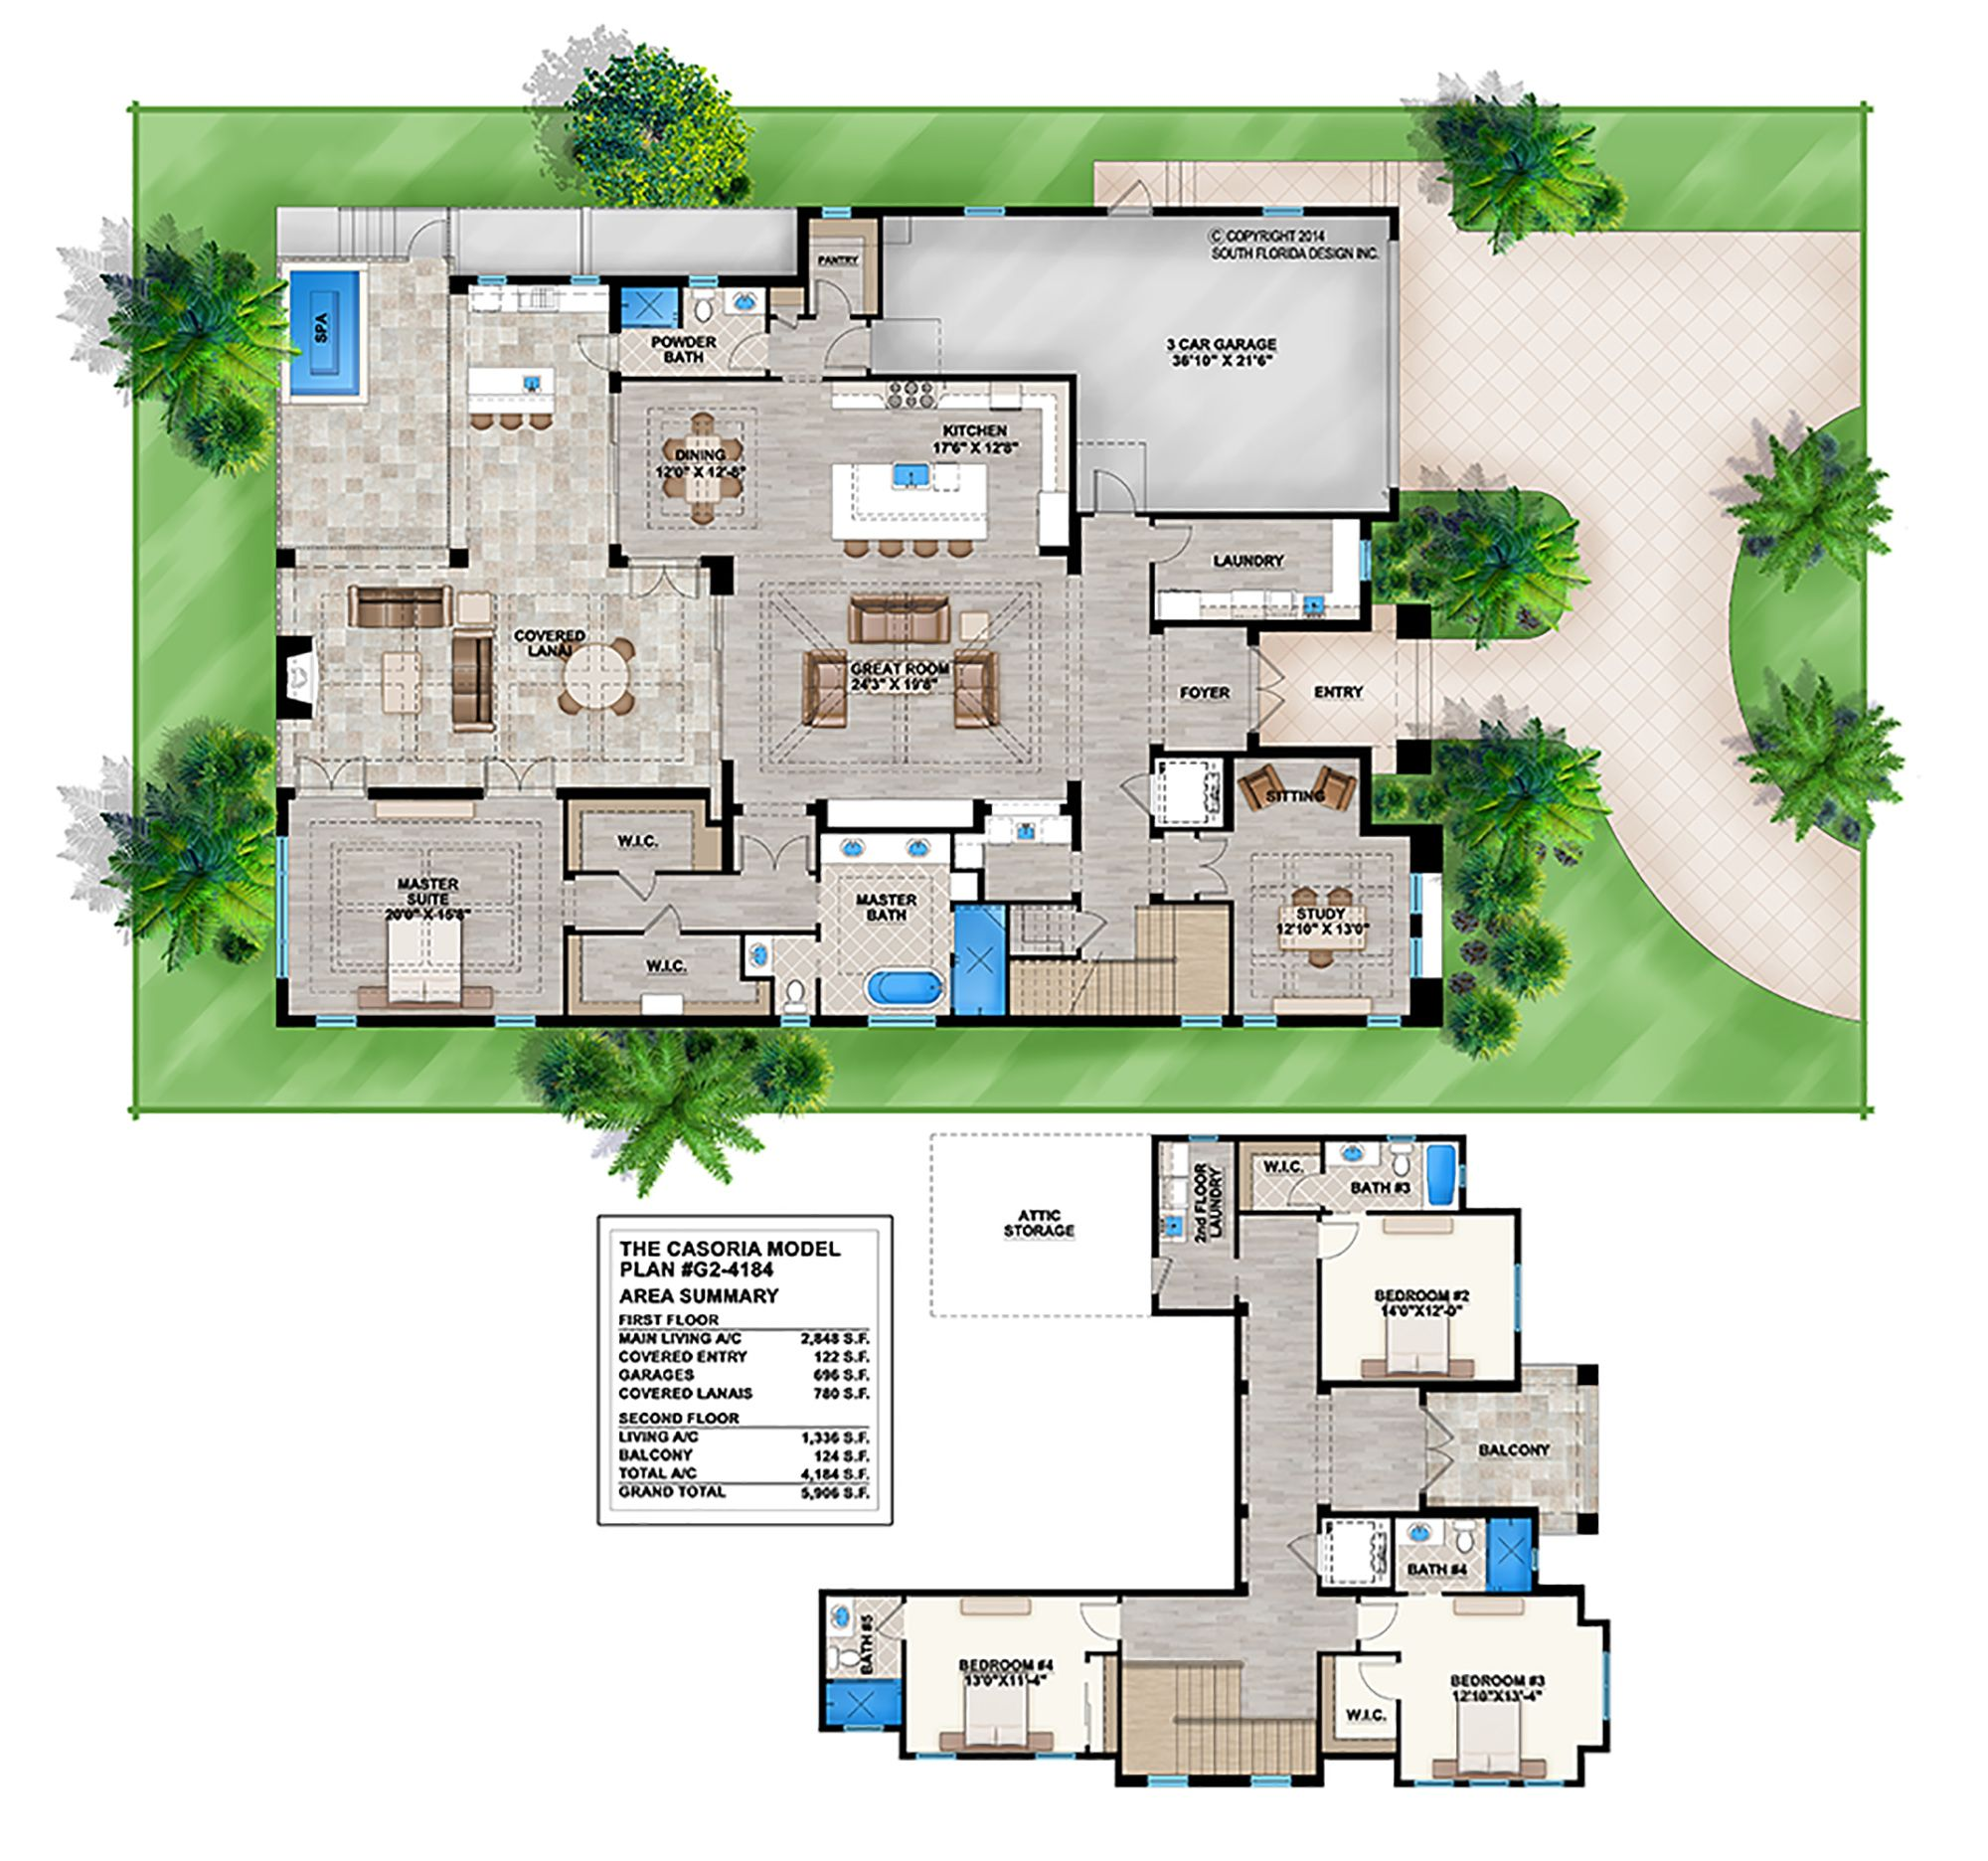 2-Story Mediterranean House Plan by South Florida Design | Home ...